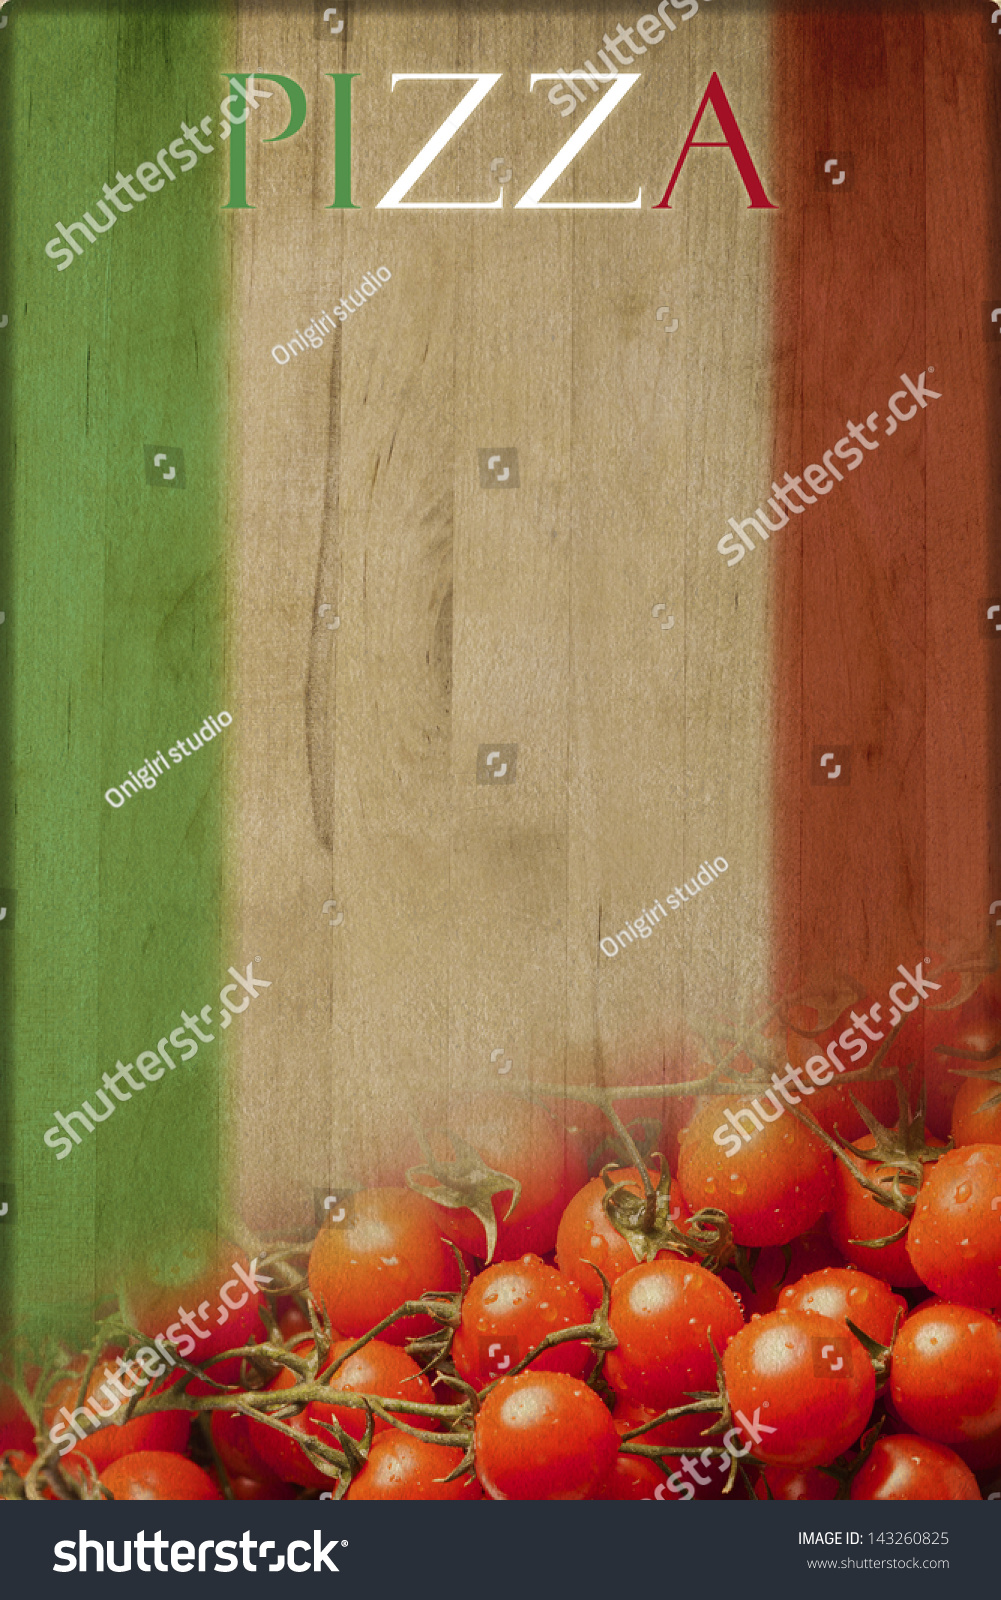 Pizza Menu Background Stock Illustration 143260825